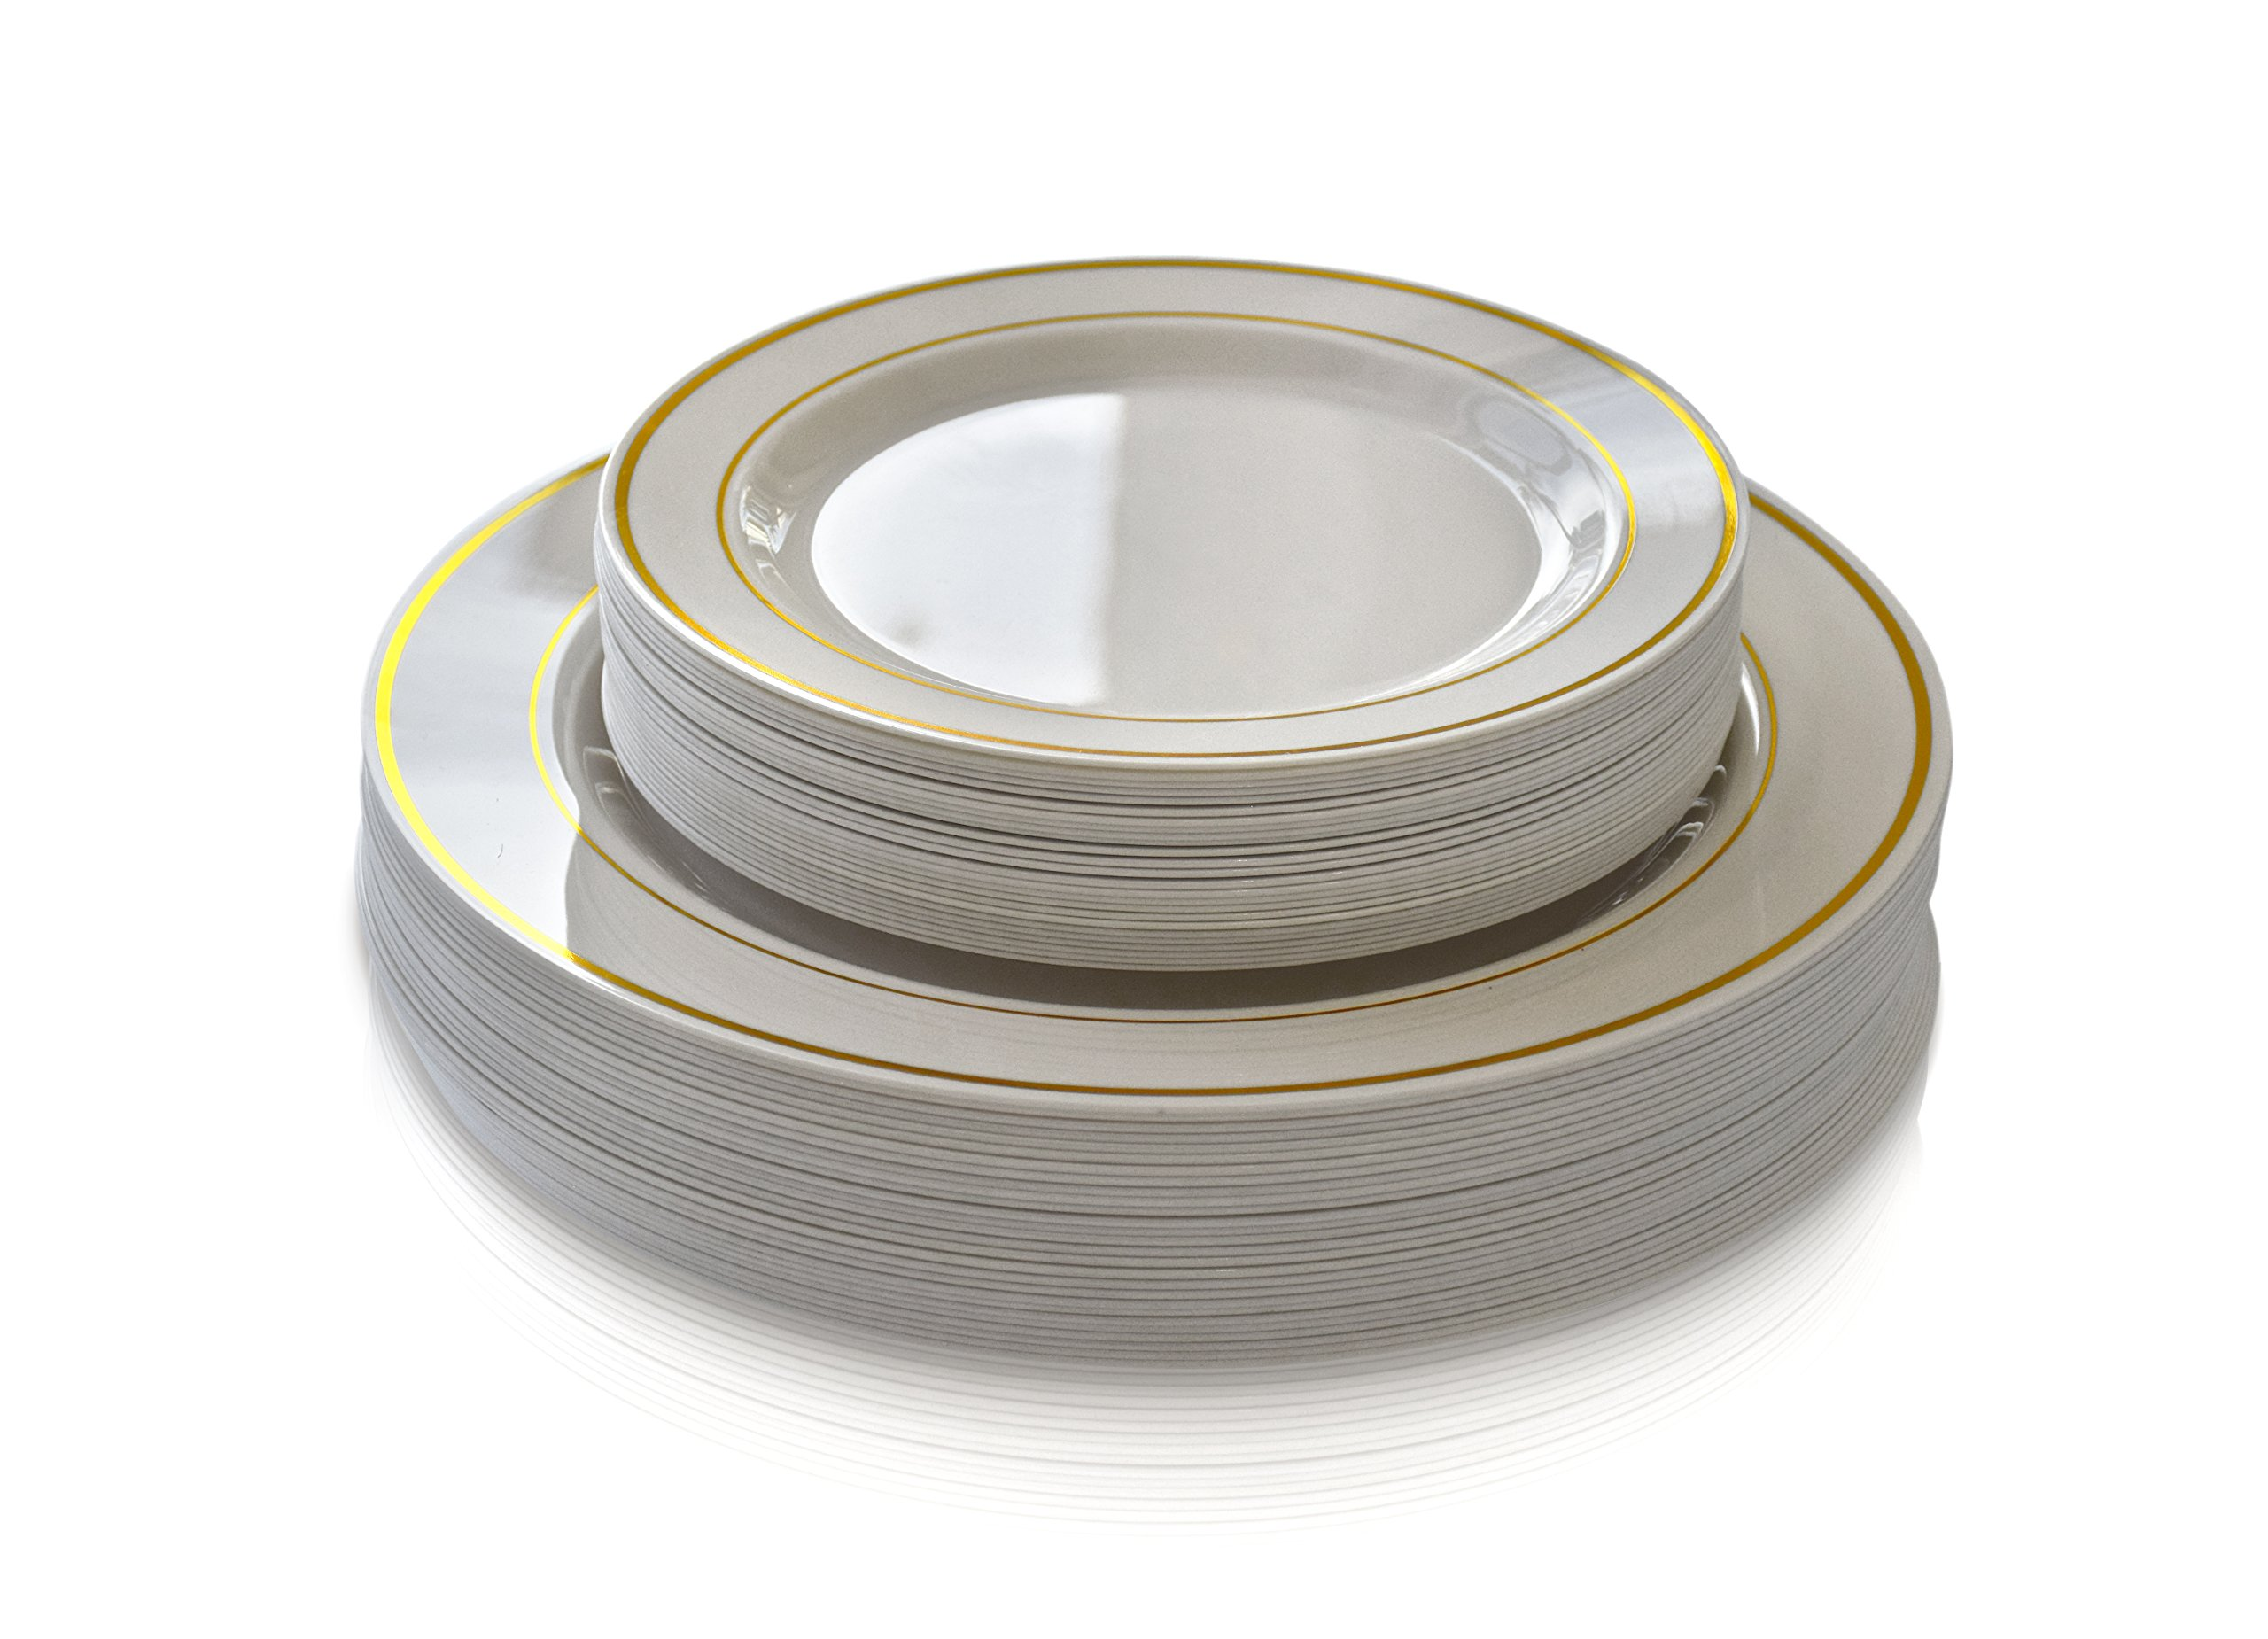 ''OCCASIONS'' 240 PACK Disposable Plastic Plates Set - 120 x 10.5'' Dinner + 120 x 7.5'' Salad (Ivory/Gold Rim)